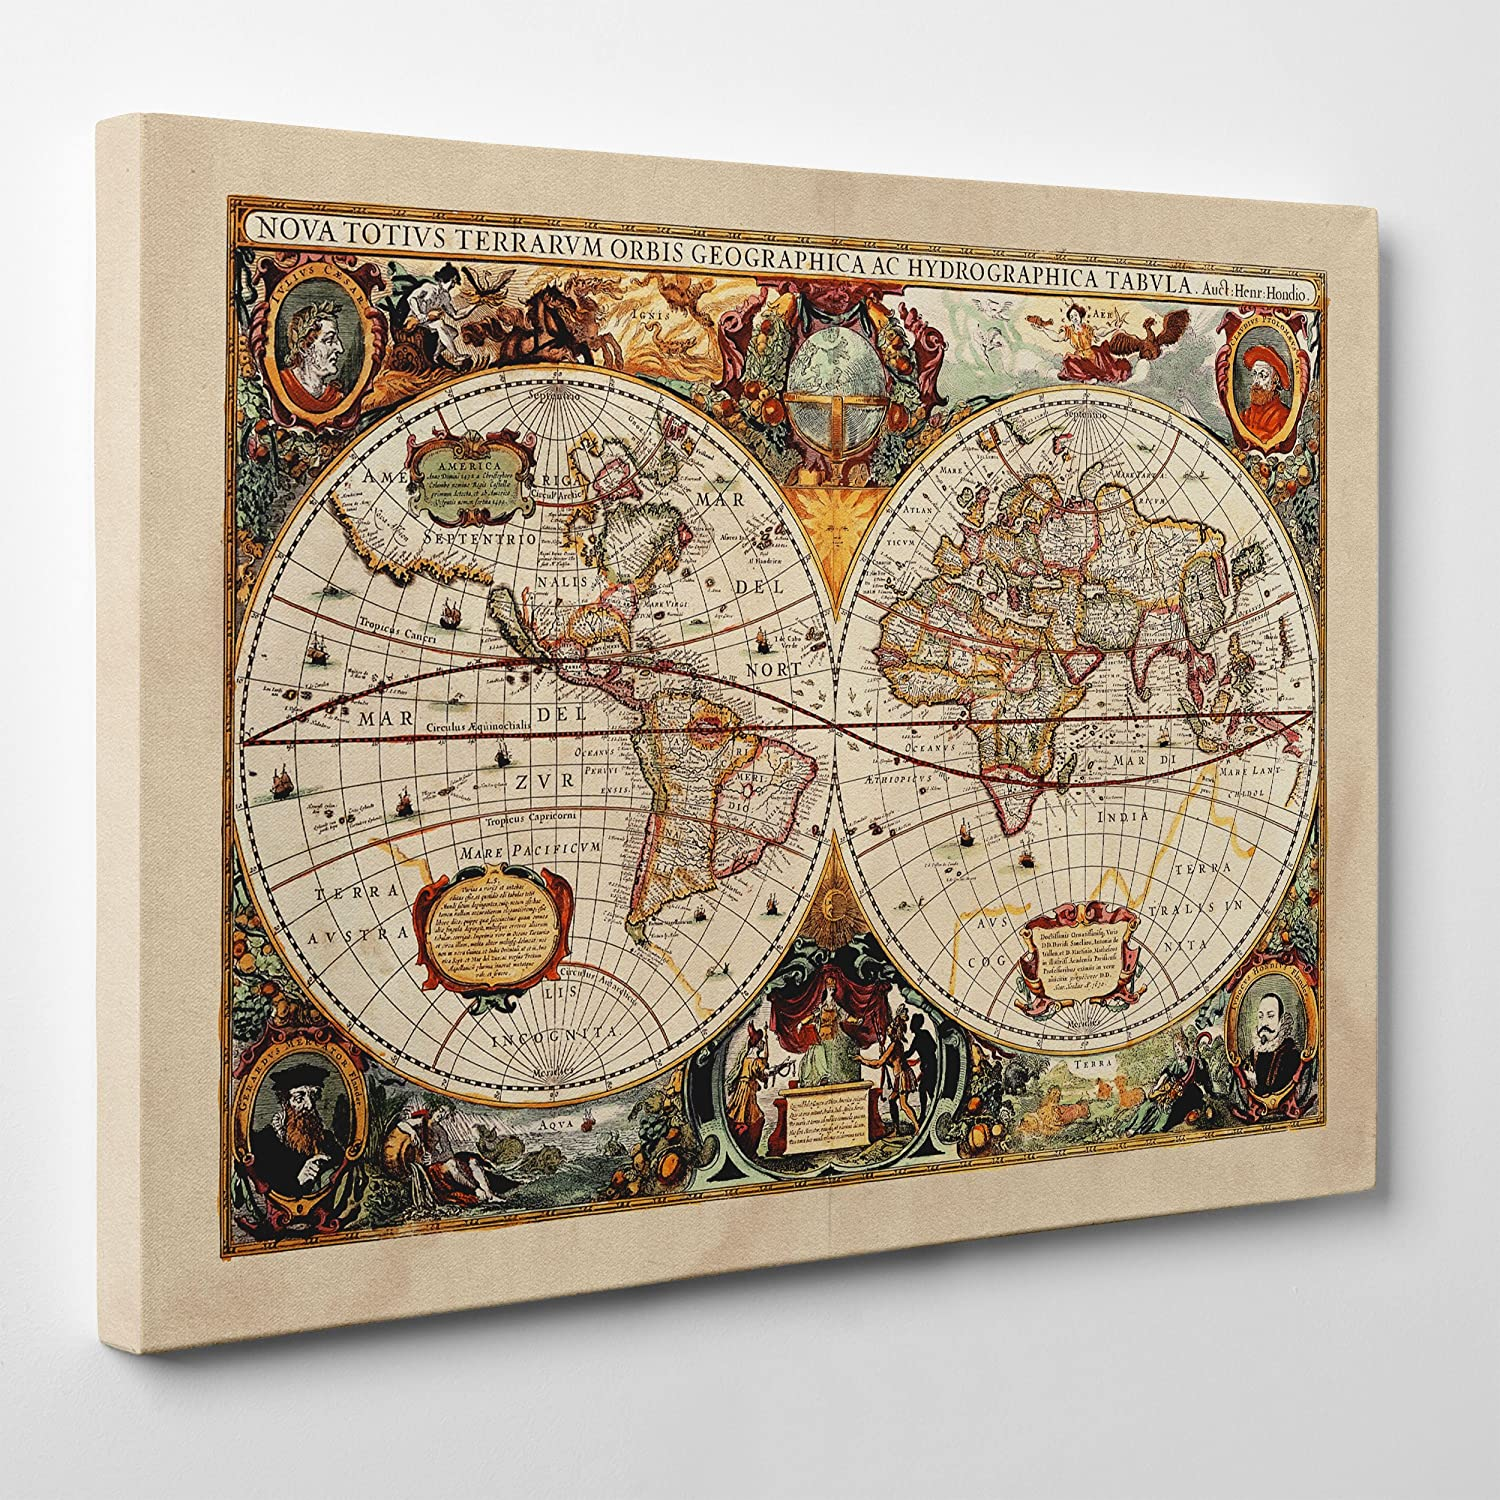 Quadro Cartina Mondo.Quadro Su Tela Intelaiato Antica Mappa 1646 Mondo World Map Cartina Geografica 70x100cm Spessore 2cm Amazon It Casa E Cucina